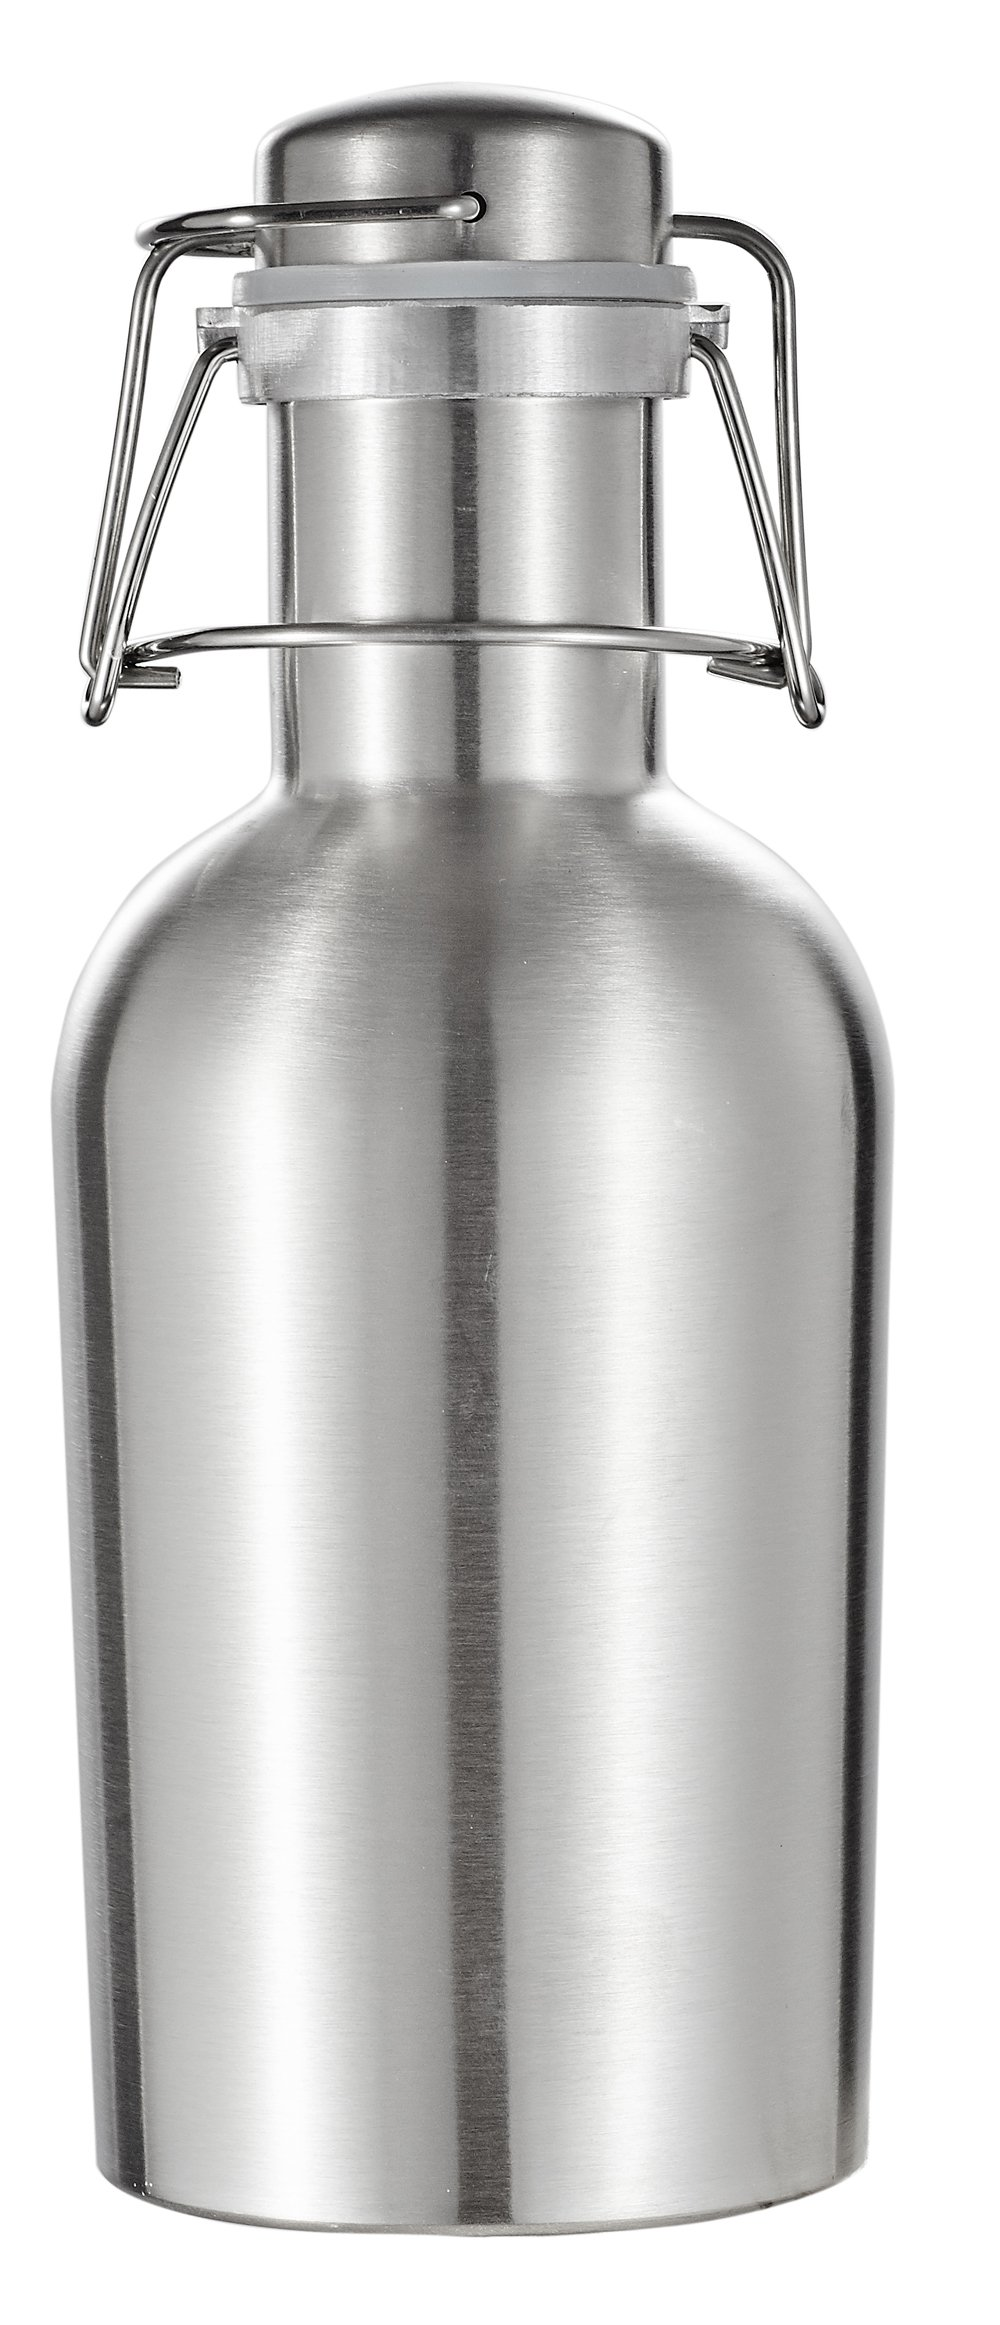 Visol Products Visol Cassis Stainless Steel 32 oz Beer Growler, Silver